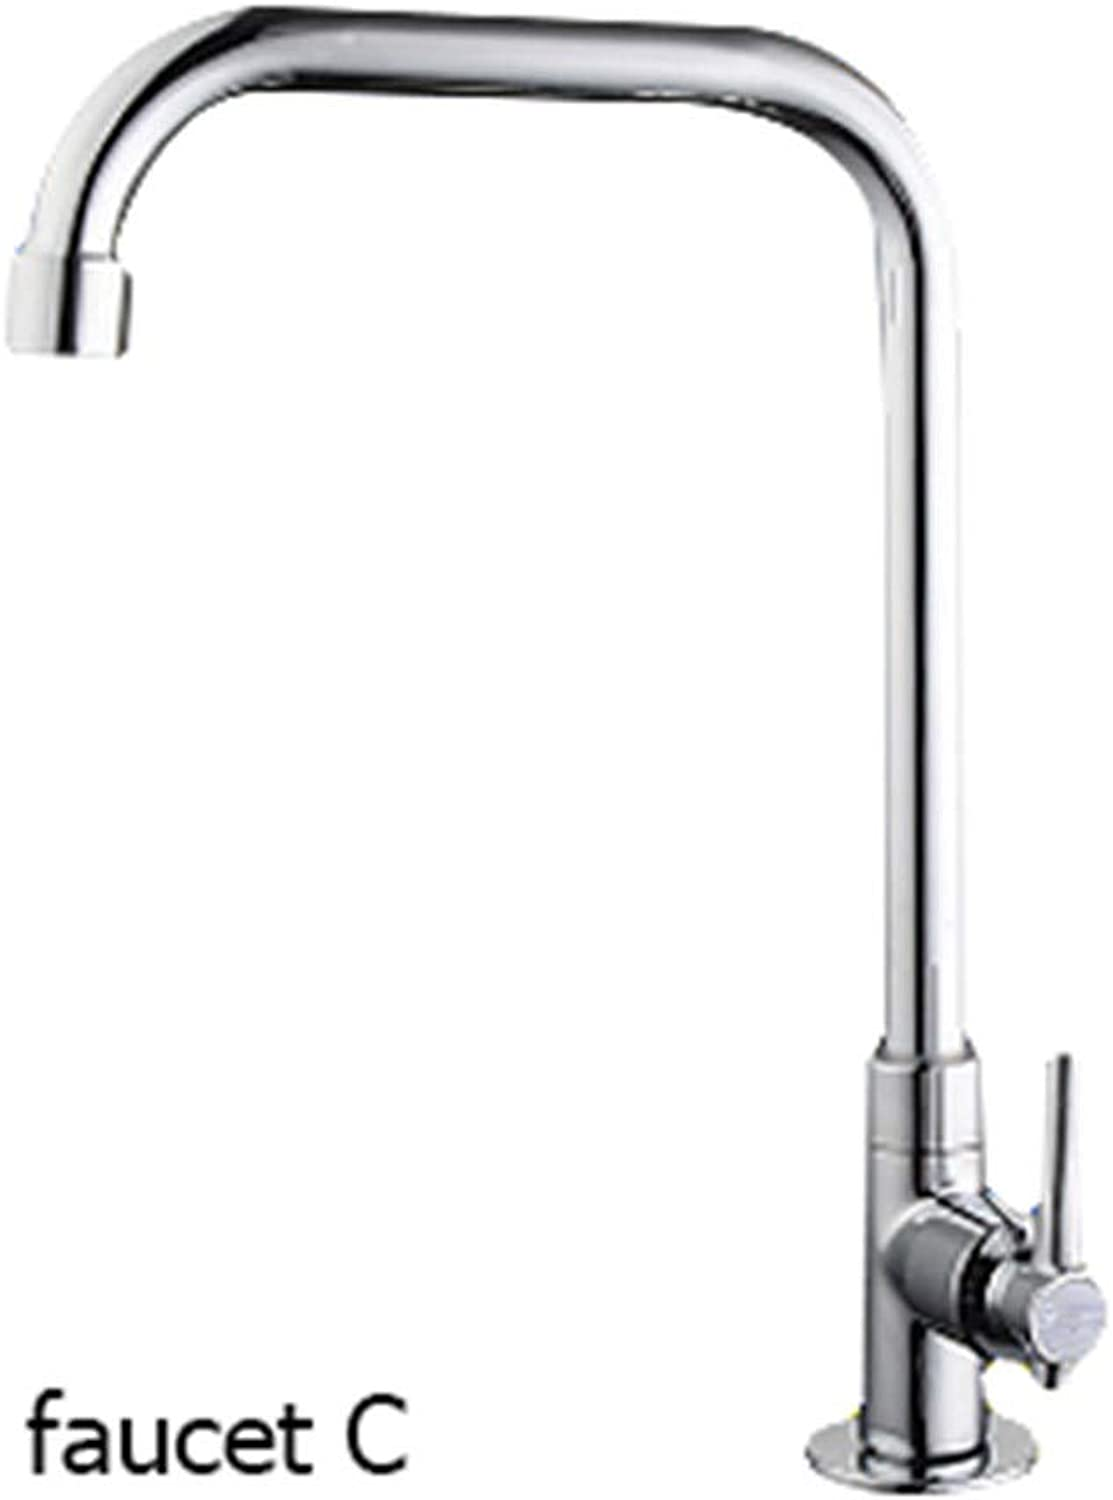 360 Degree Swivel Alloy Kitchen Cold Kitchen Tap Single Hole Water Tap Kitchen Faucet,Faucet C